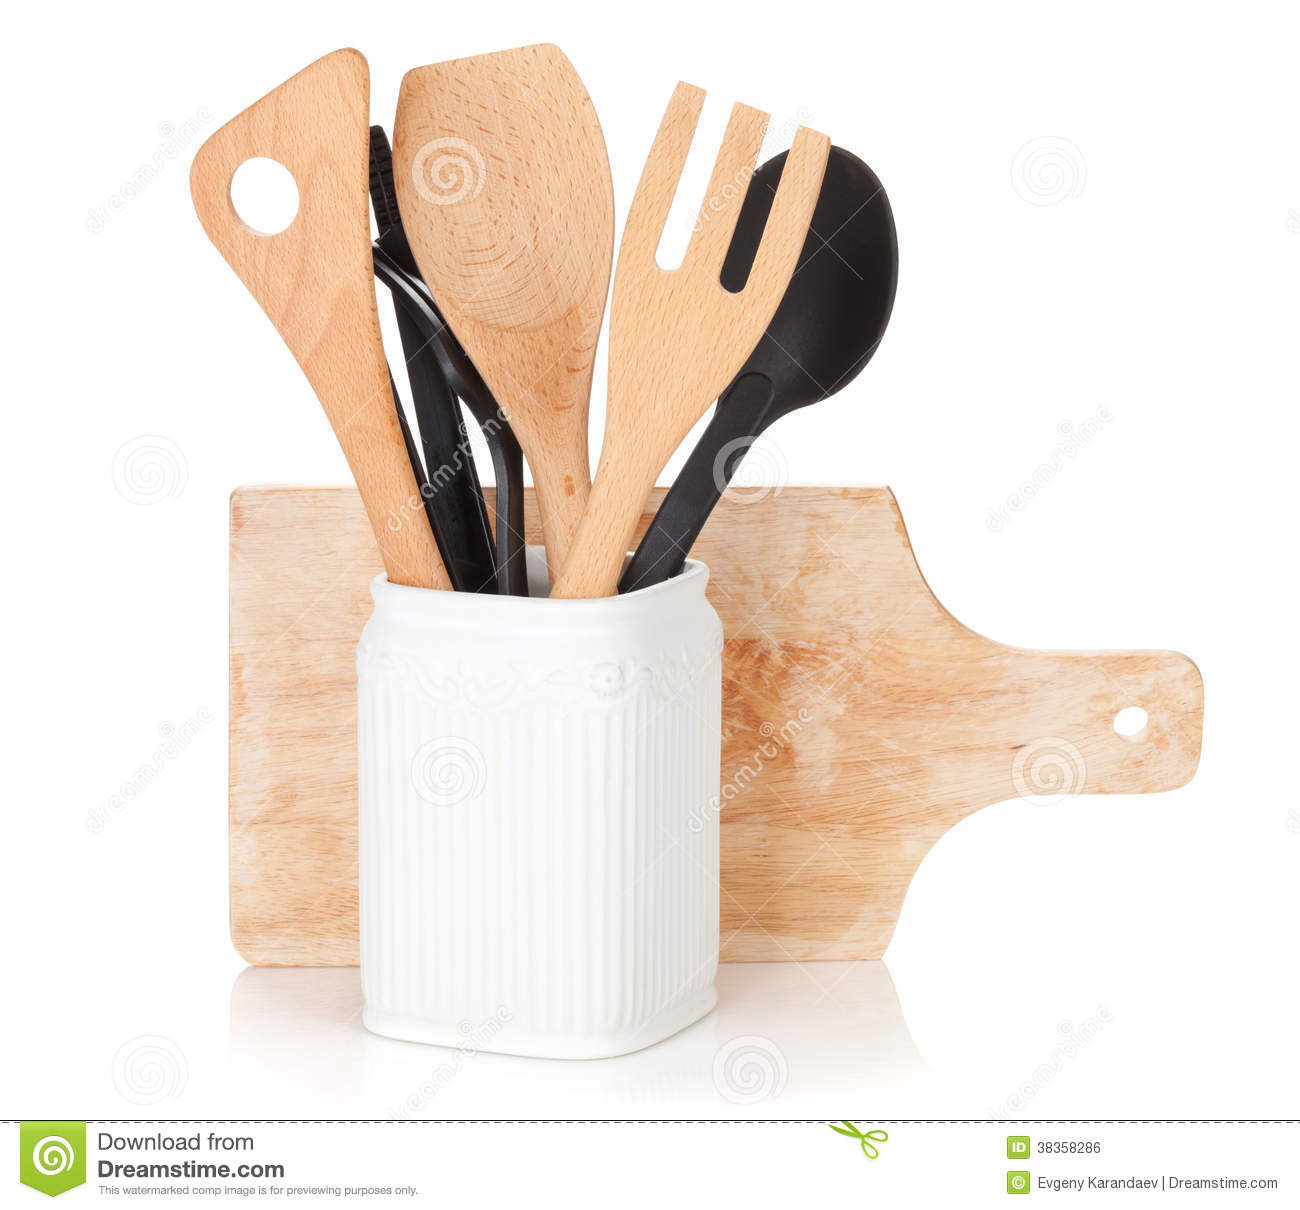 Cooking Equipment : Cooking Equipment Royalty Free Stock Image - Image: 38358286